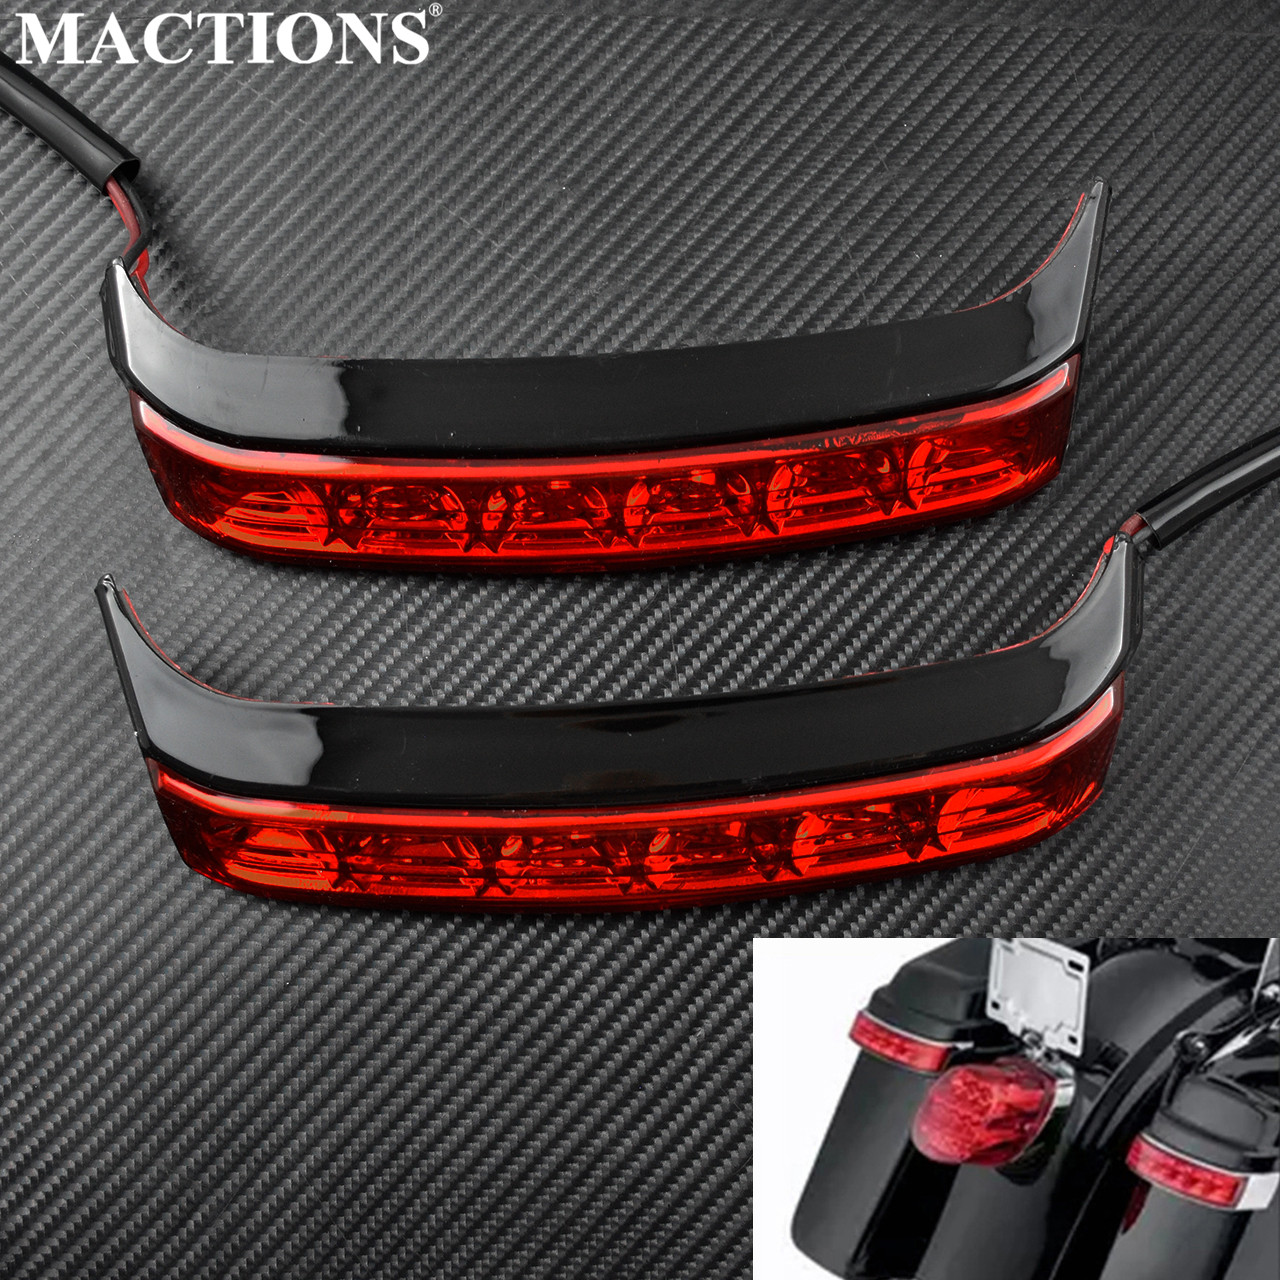 Motorcycle Saddlebag Red Lens Tail Turn Light Box Luggage Housing Run Lamp For Harley Touring Road King FLHR 2014-19